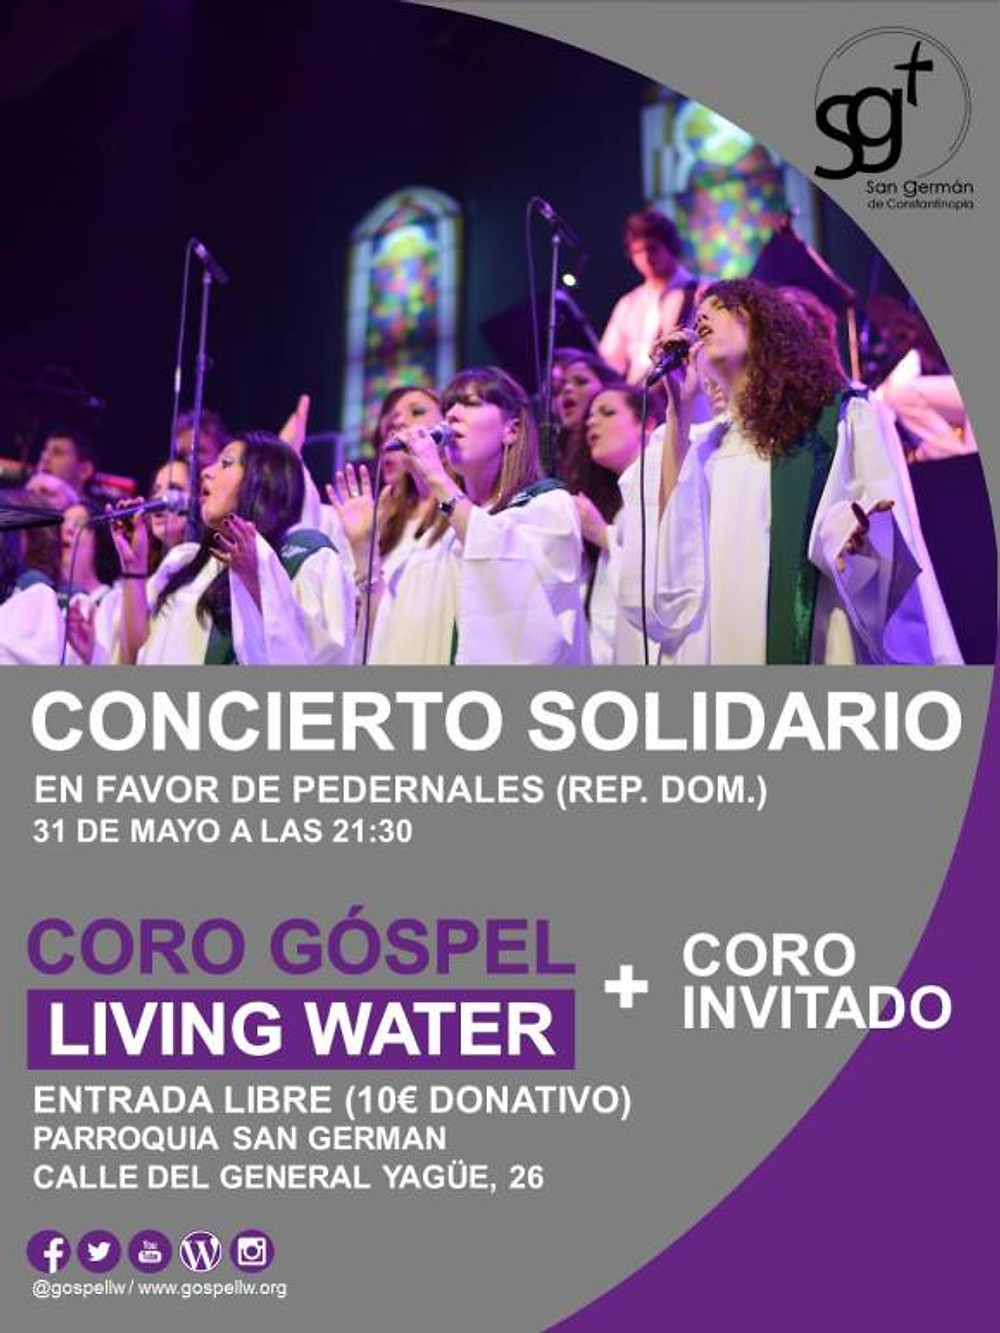 CARTEL CORPORATIVO PARA SOLIDARIOS COLO GOSPEL LIVING WATER